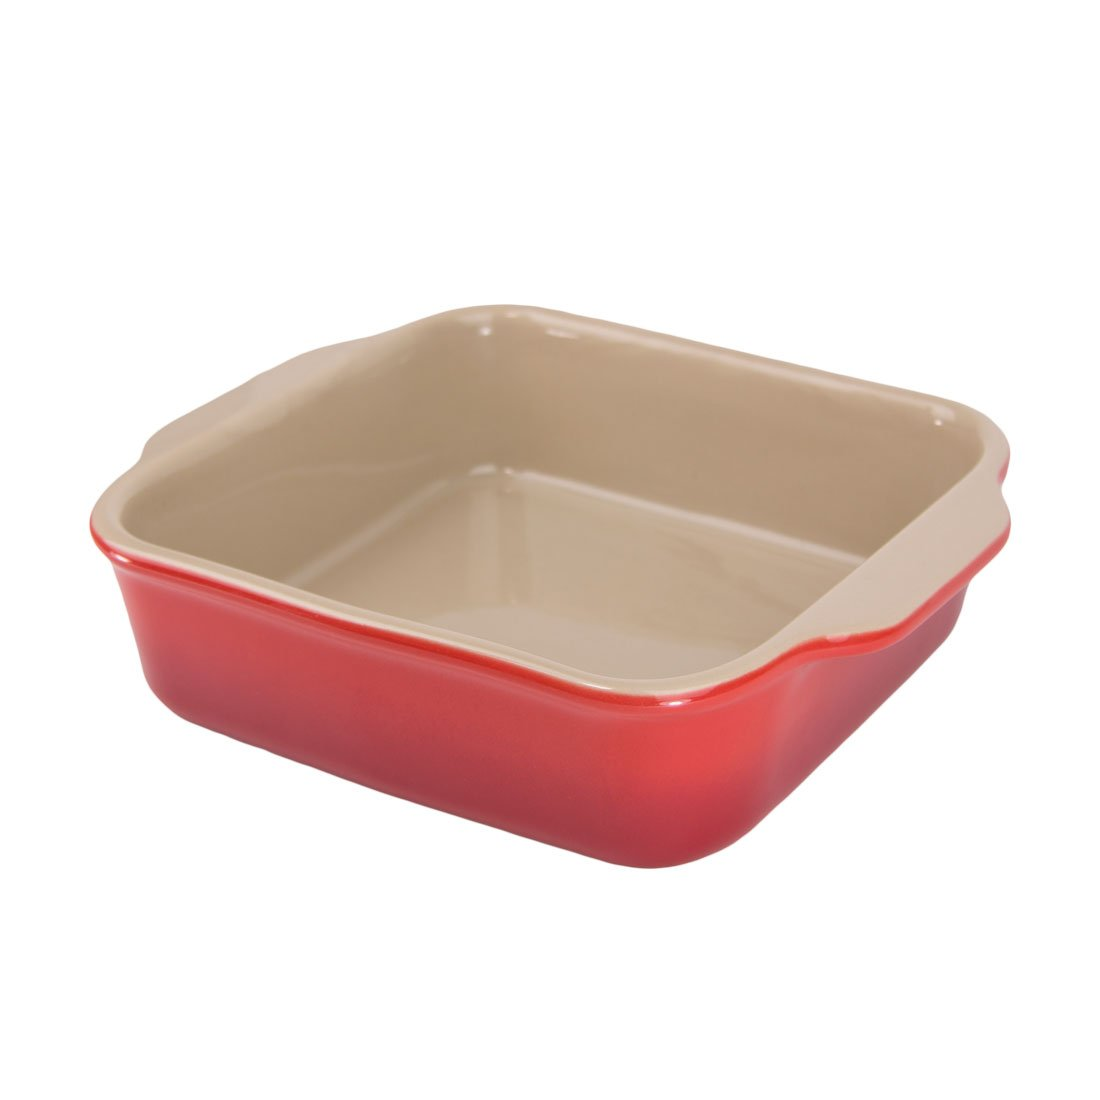 """American Bakeware 7"""" x 7"""" Square Casserole Baker - Non Stick Ceramic - Heat Resistant to 400 °F - No Metals or other Harmful Materials - Safe for Oven, Microwave, Dishwasher - Made in the USA"""